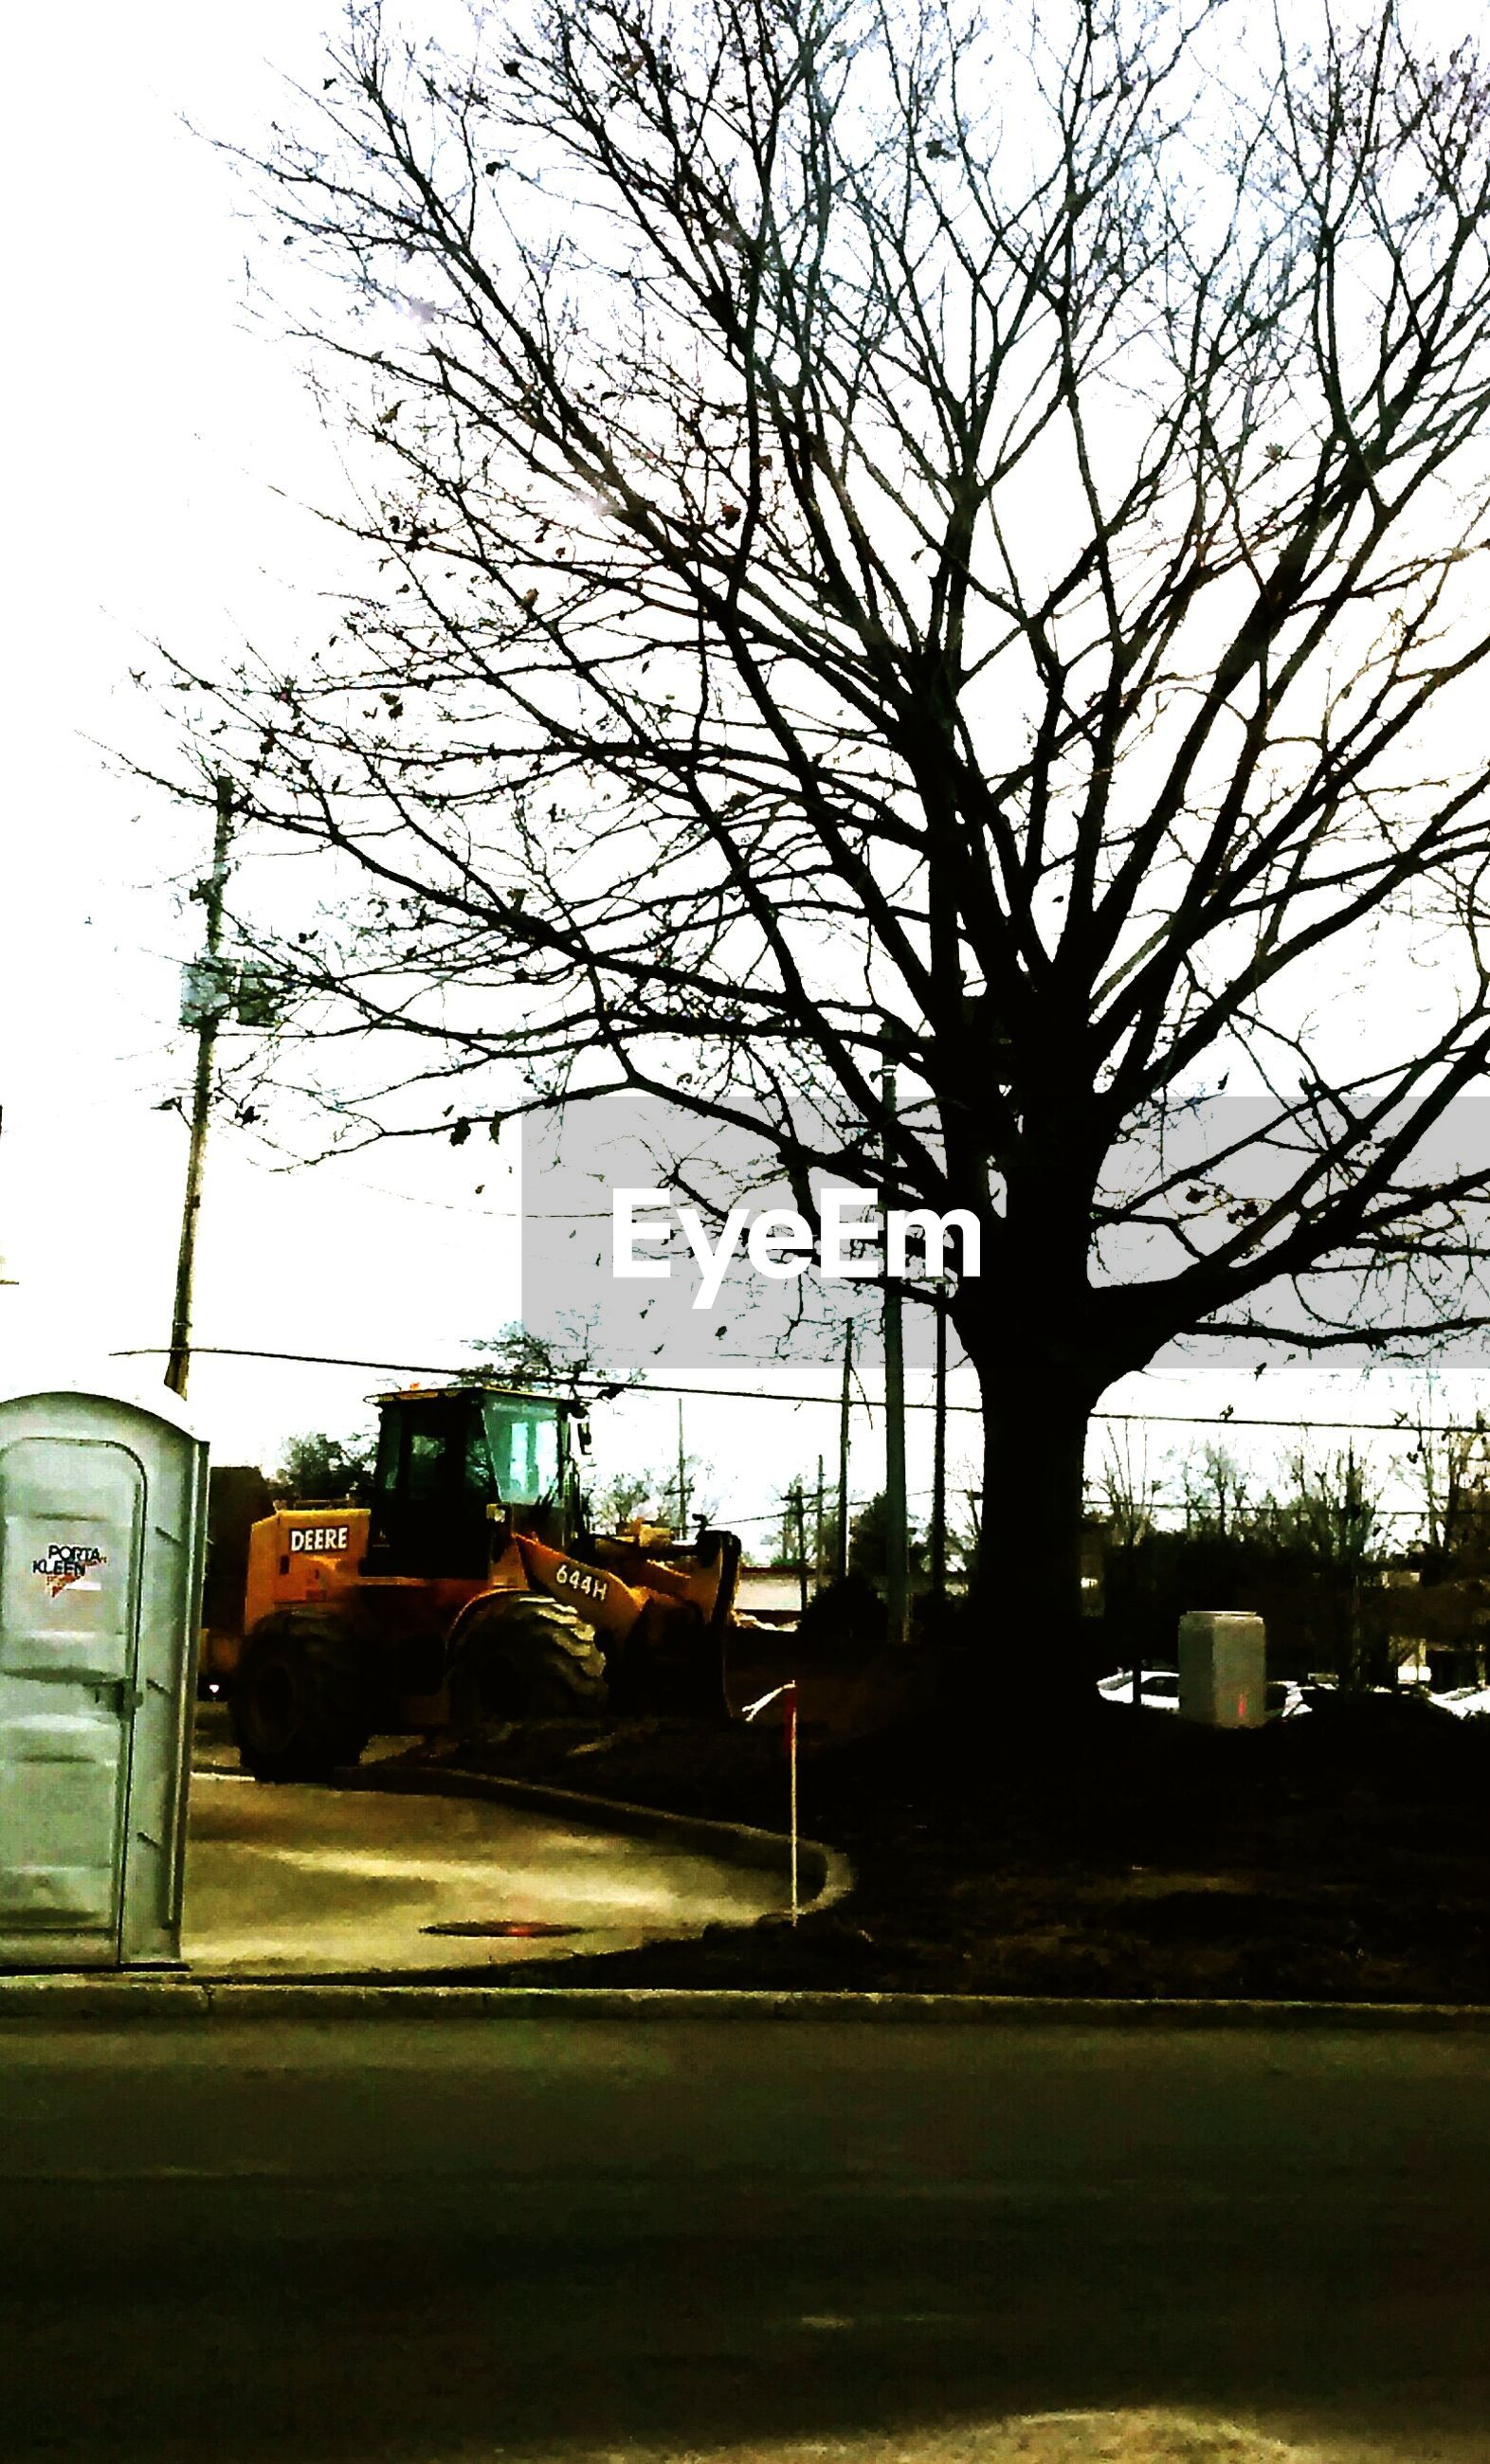 bare tree, building exterior, transportation, car, tree, built structure, architecture, land vehicle, street, mode of transport, road, sky, clear sky, street light, city, silhouette, branch, outdoors, no people, sunlight